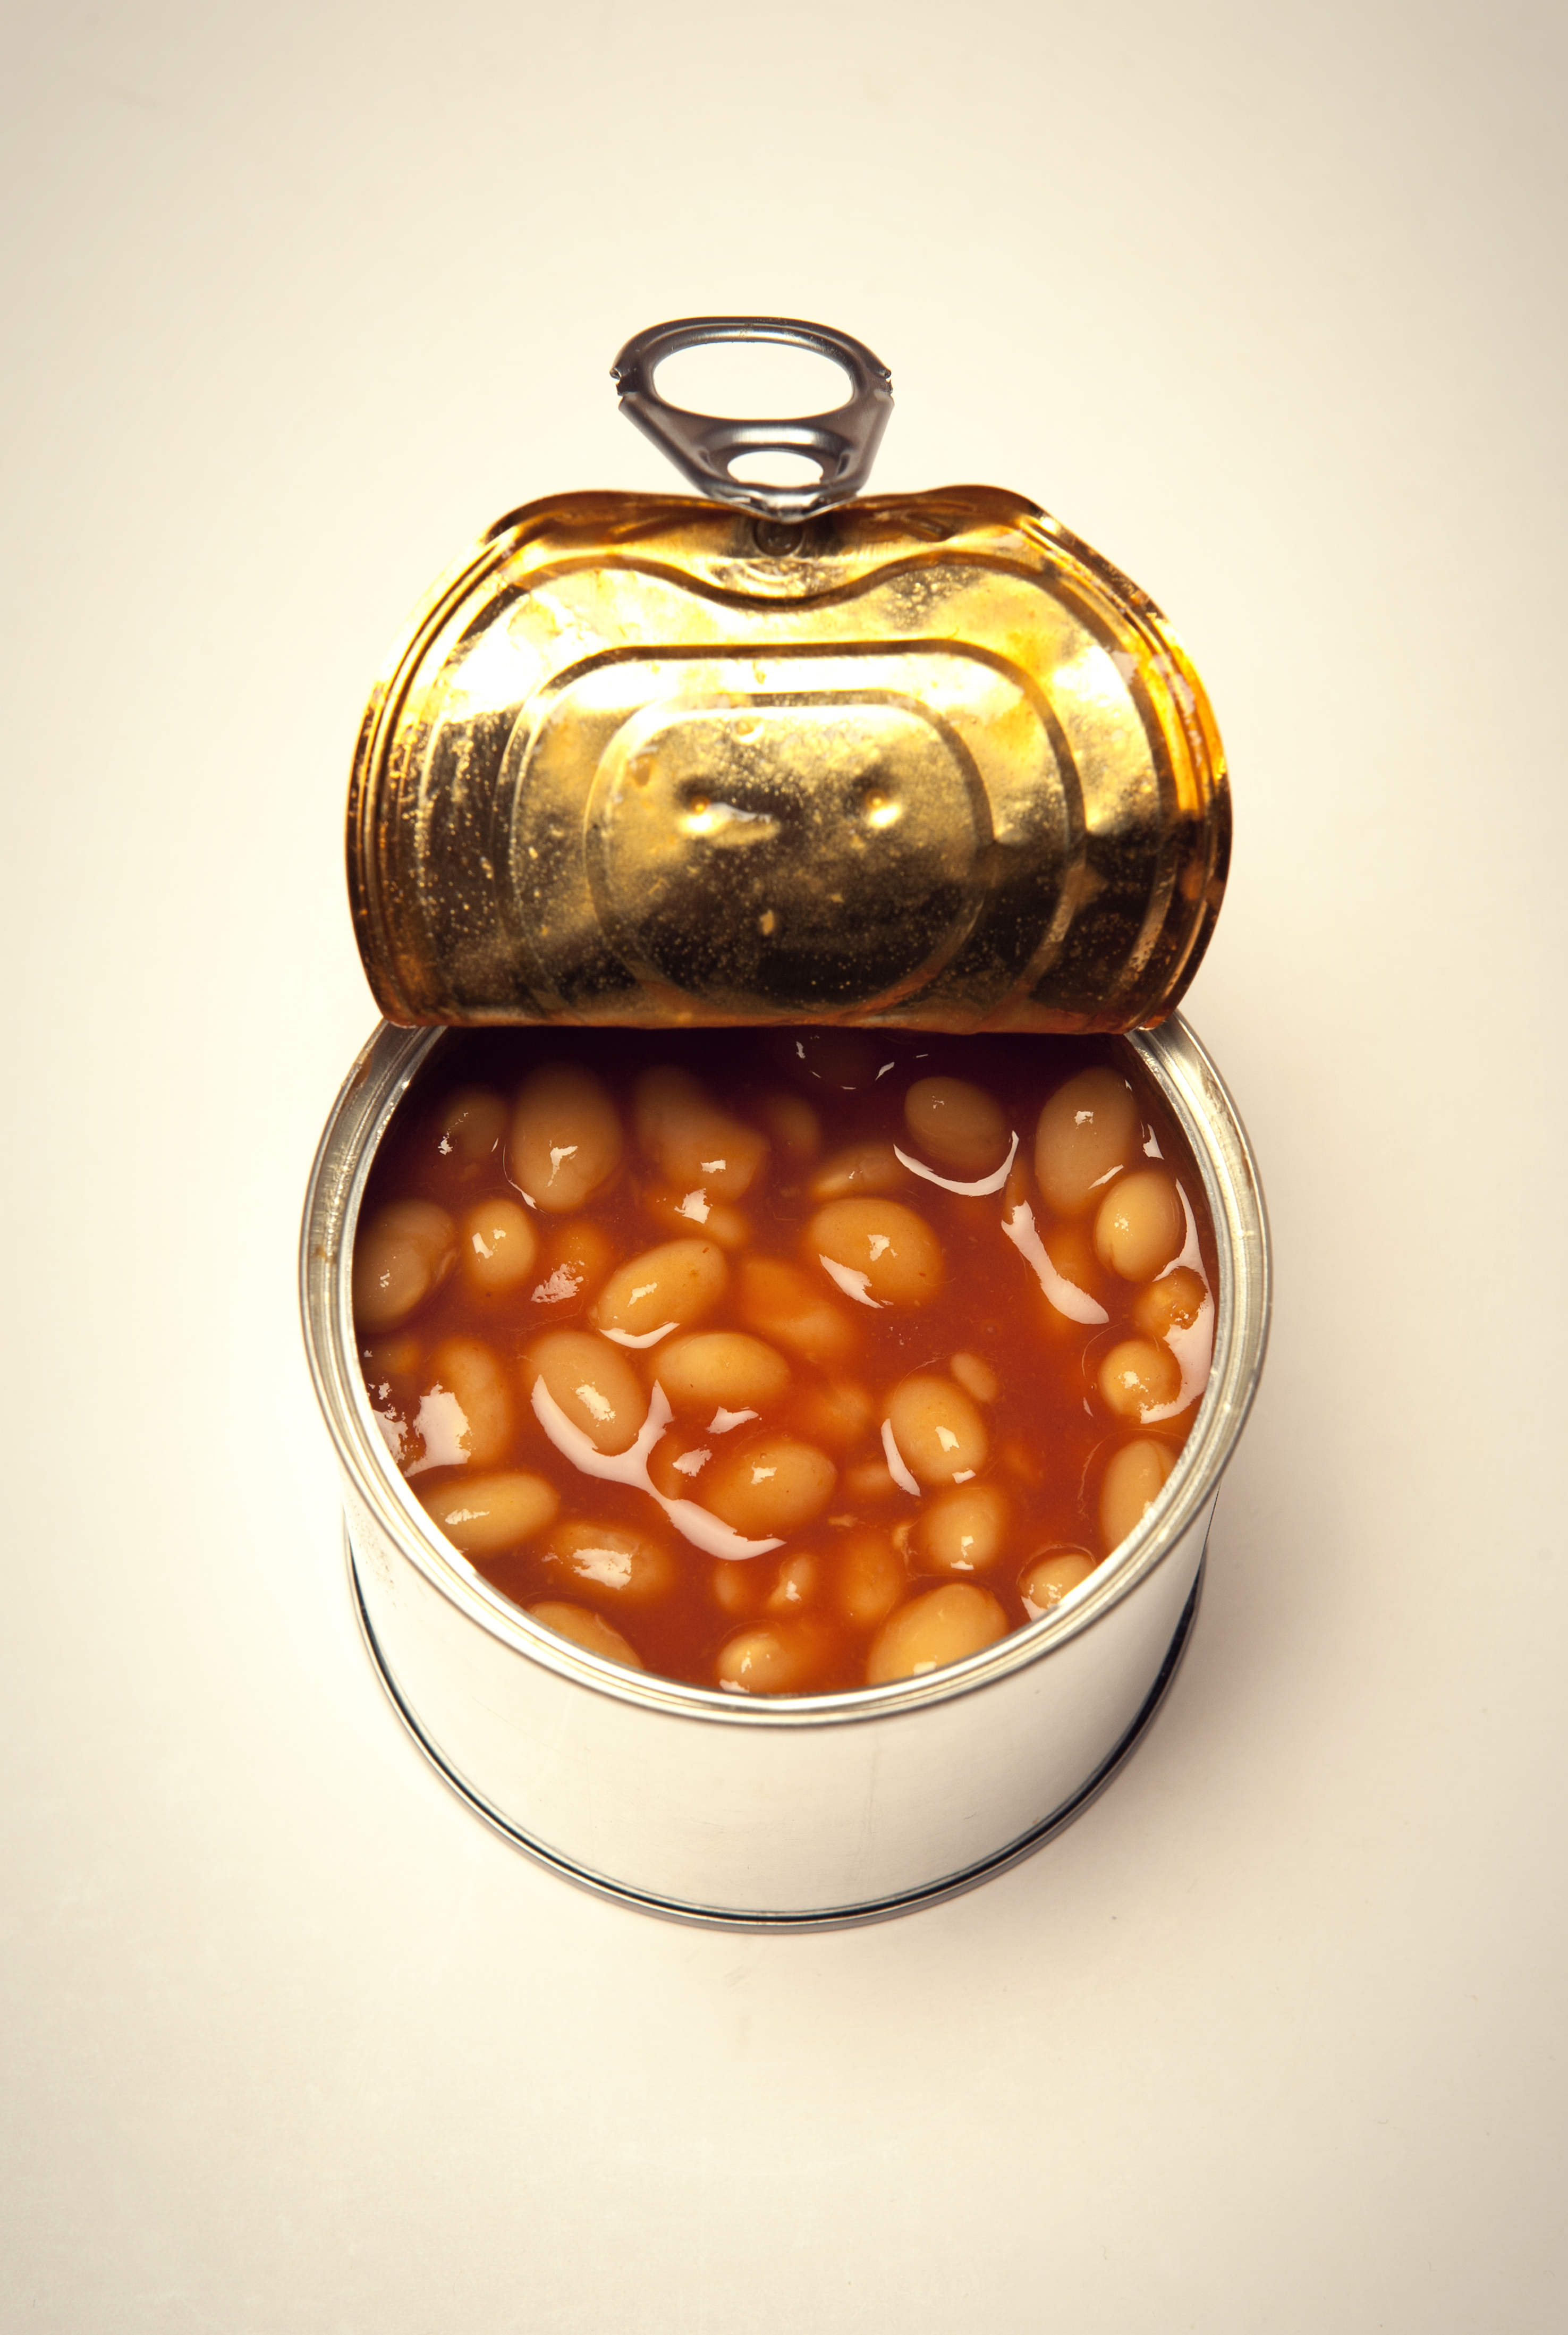 worst-legume-canned-baked-beans